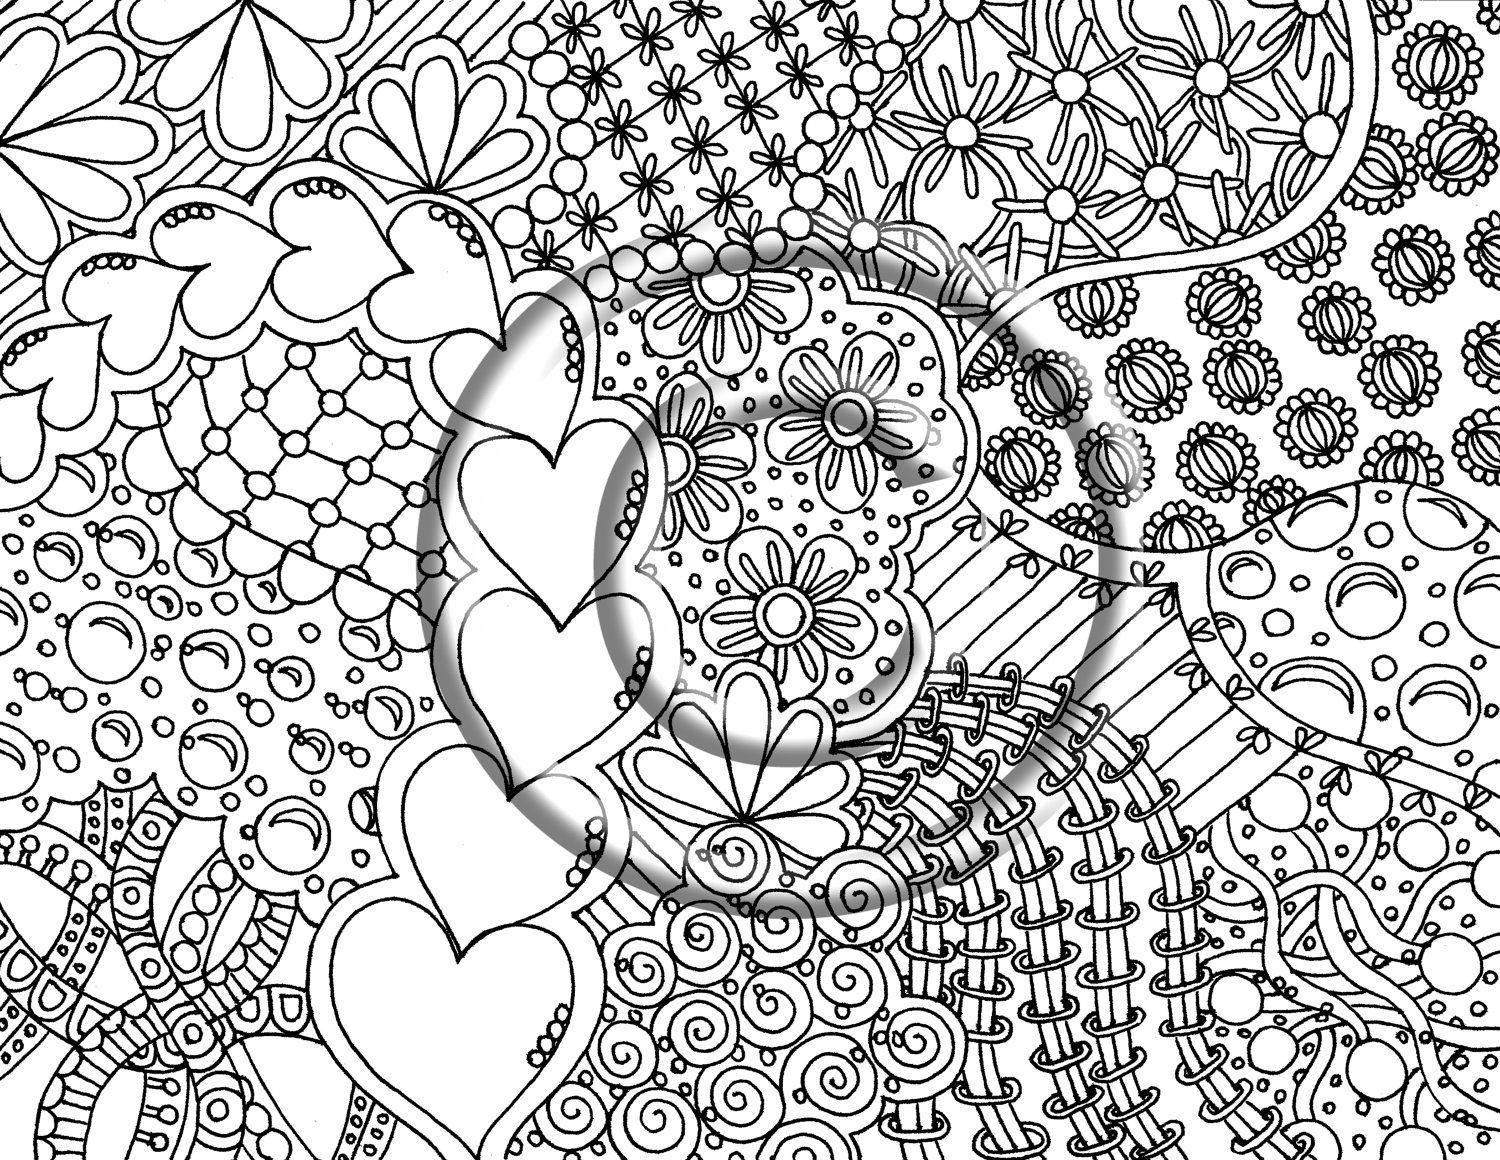 Hippie Sun Drawing at GetDrawings.com | Free for personal use Hippie ...